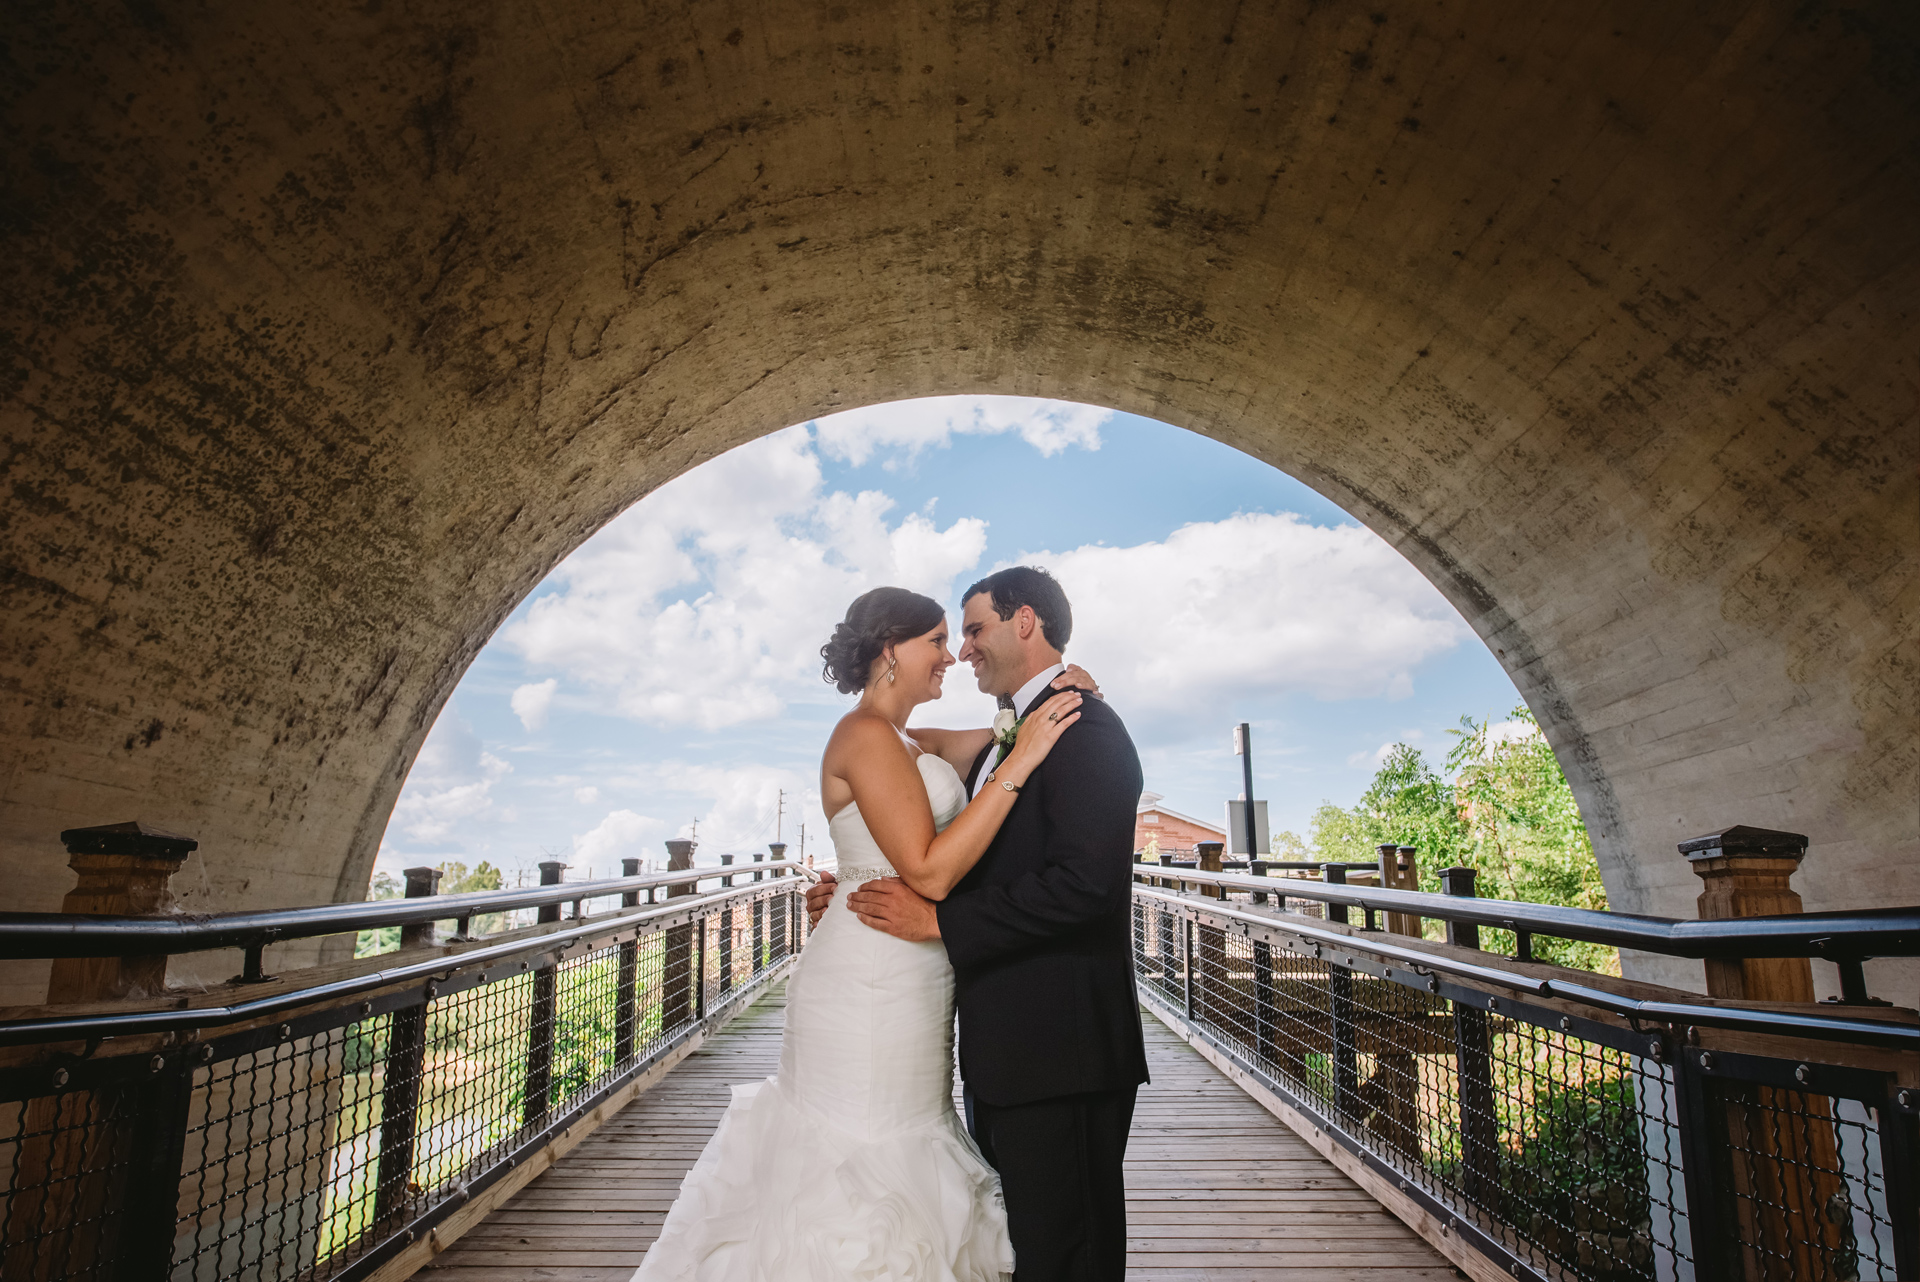 gervais street bridge wedding photos